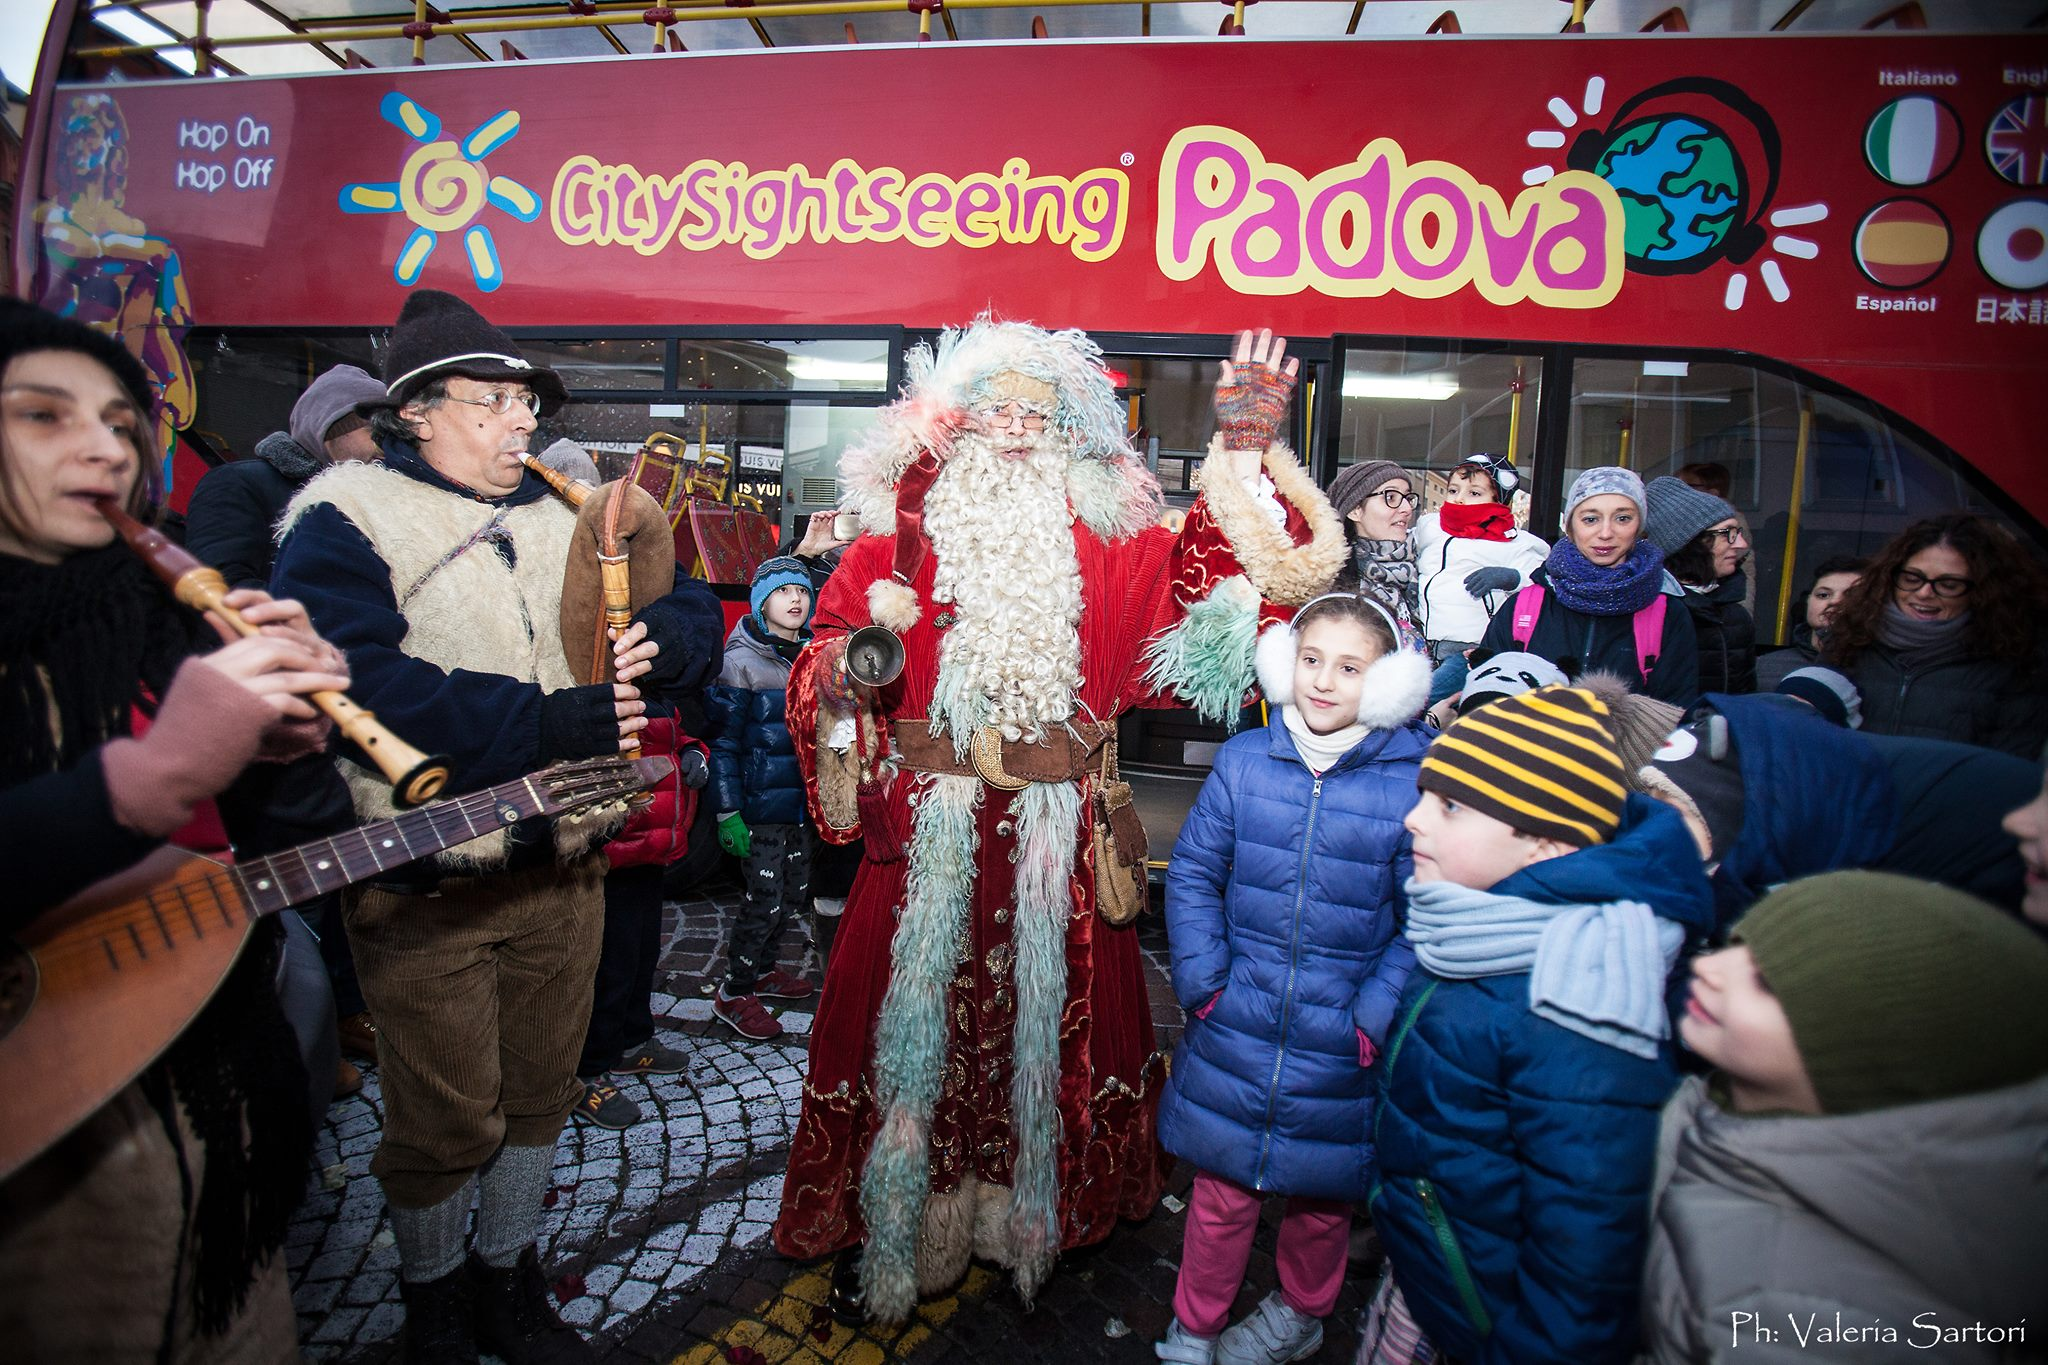 Santa Claus has arrived in Padua onboard the CitySightseeing